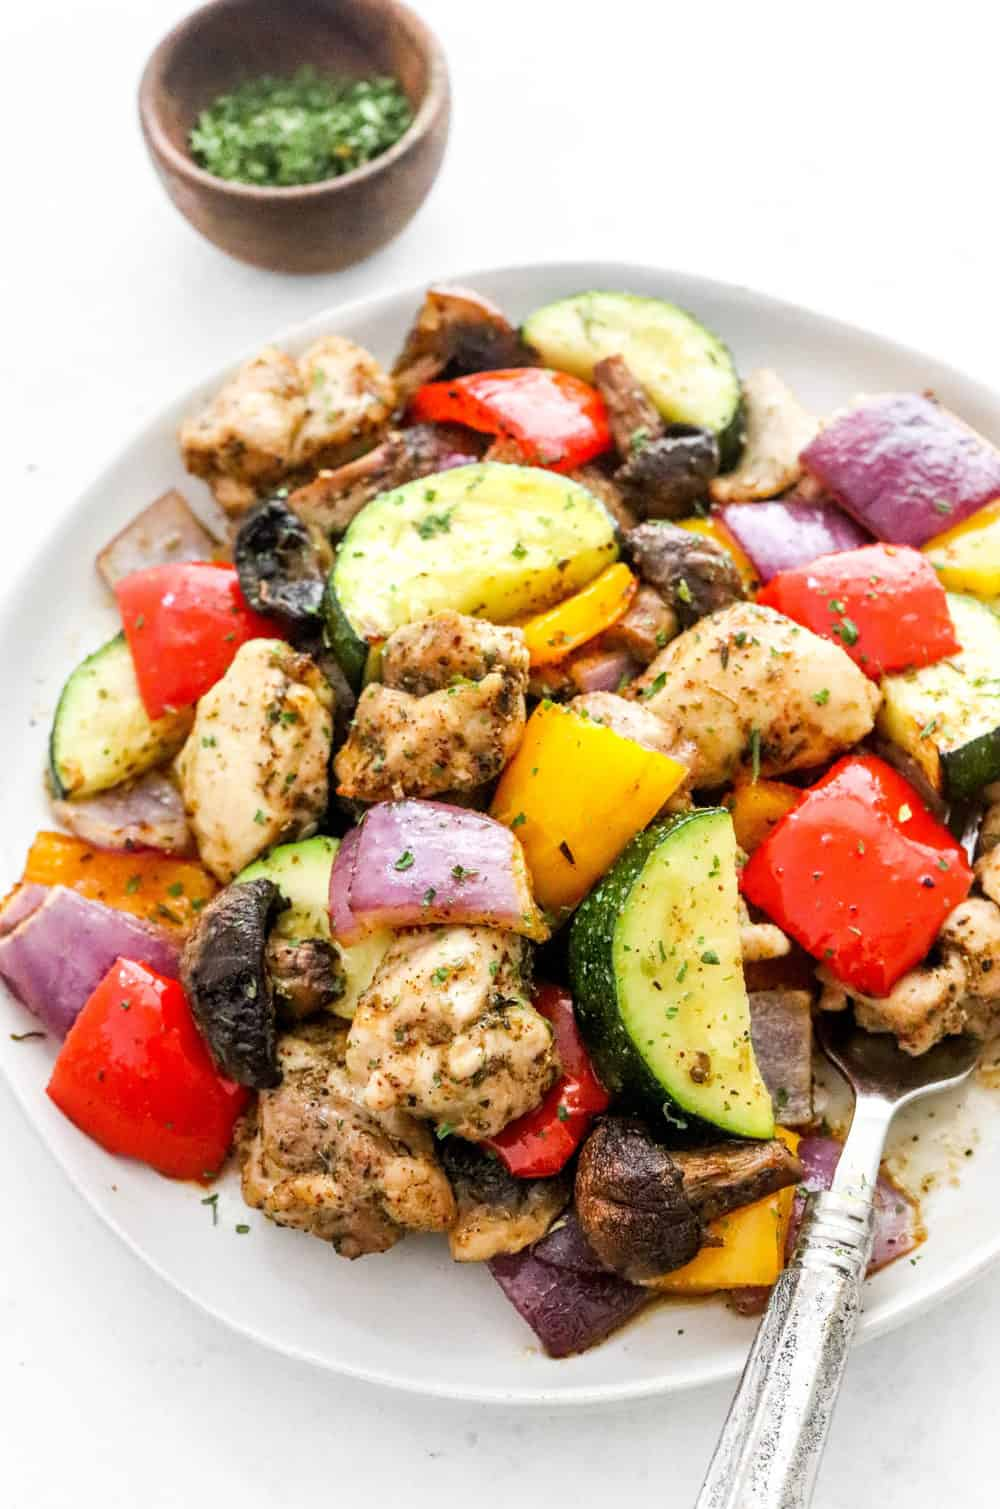 Grey round plate with sliced cooked zucchini, peppers, onions and chicken on it with a fork on the plate on a white surface.